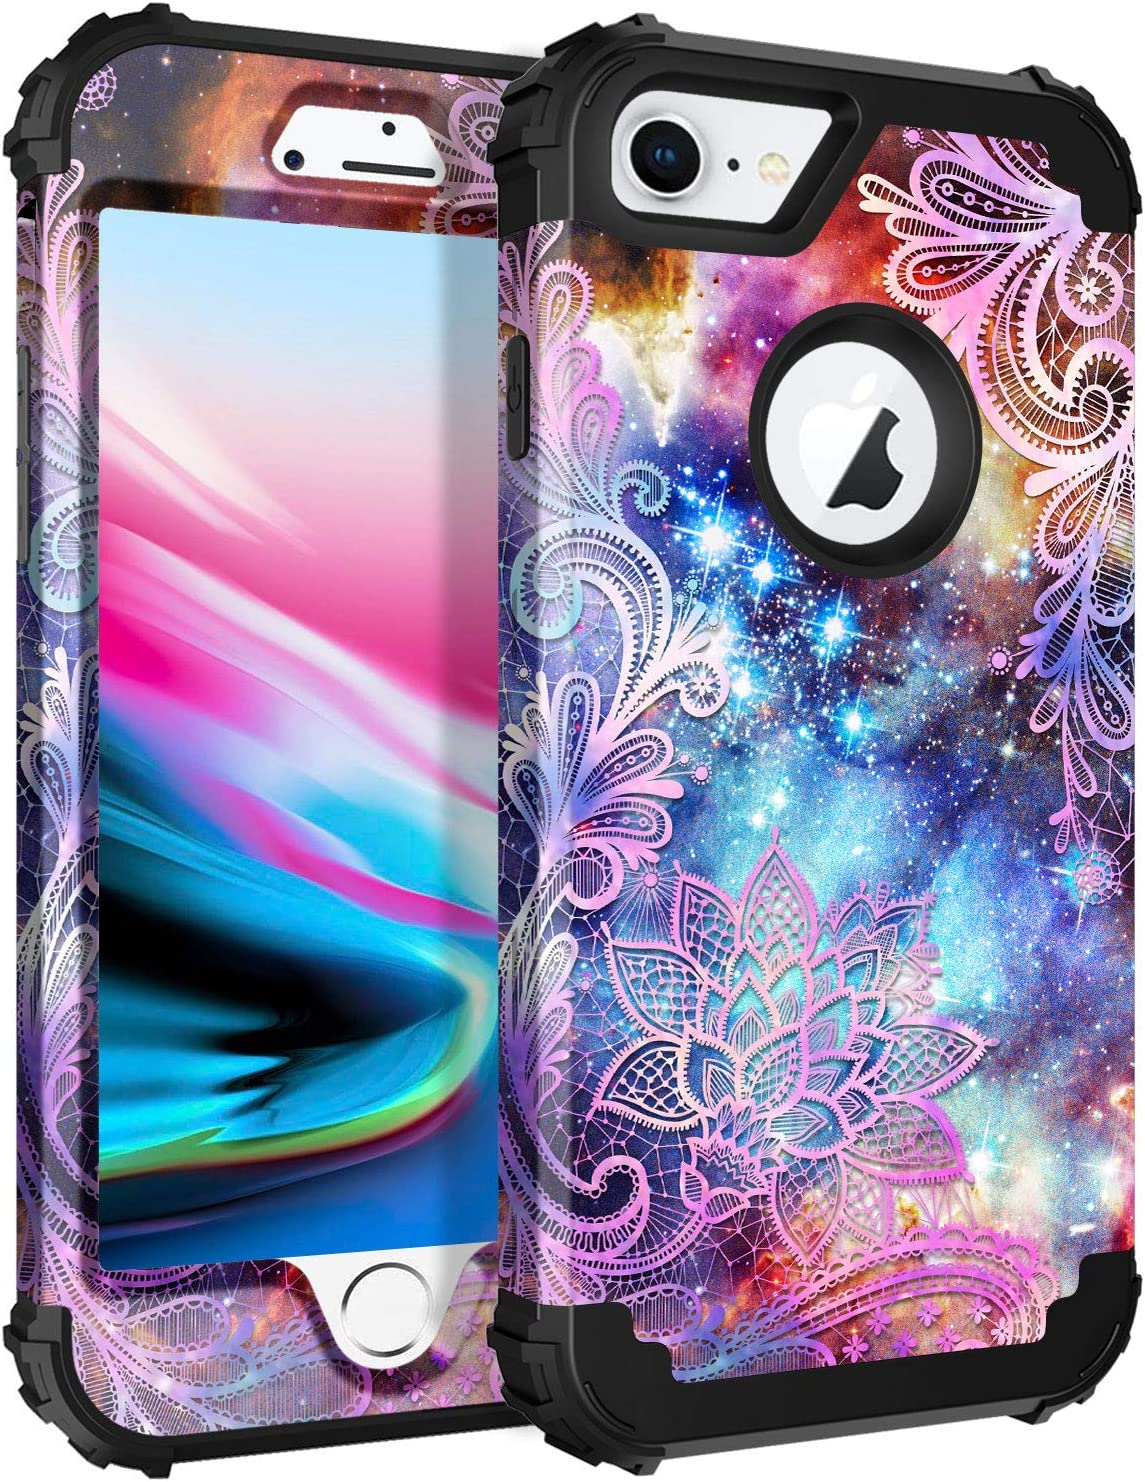 Casetego Compatible with iPhone 8 Case,iPhone 7 Case,Floral Three Layer Heavy Duty Hybrid Sturdy Shockproof Full Body Protective Cover Case for Apple iPhone 8/7,Purple Mandala